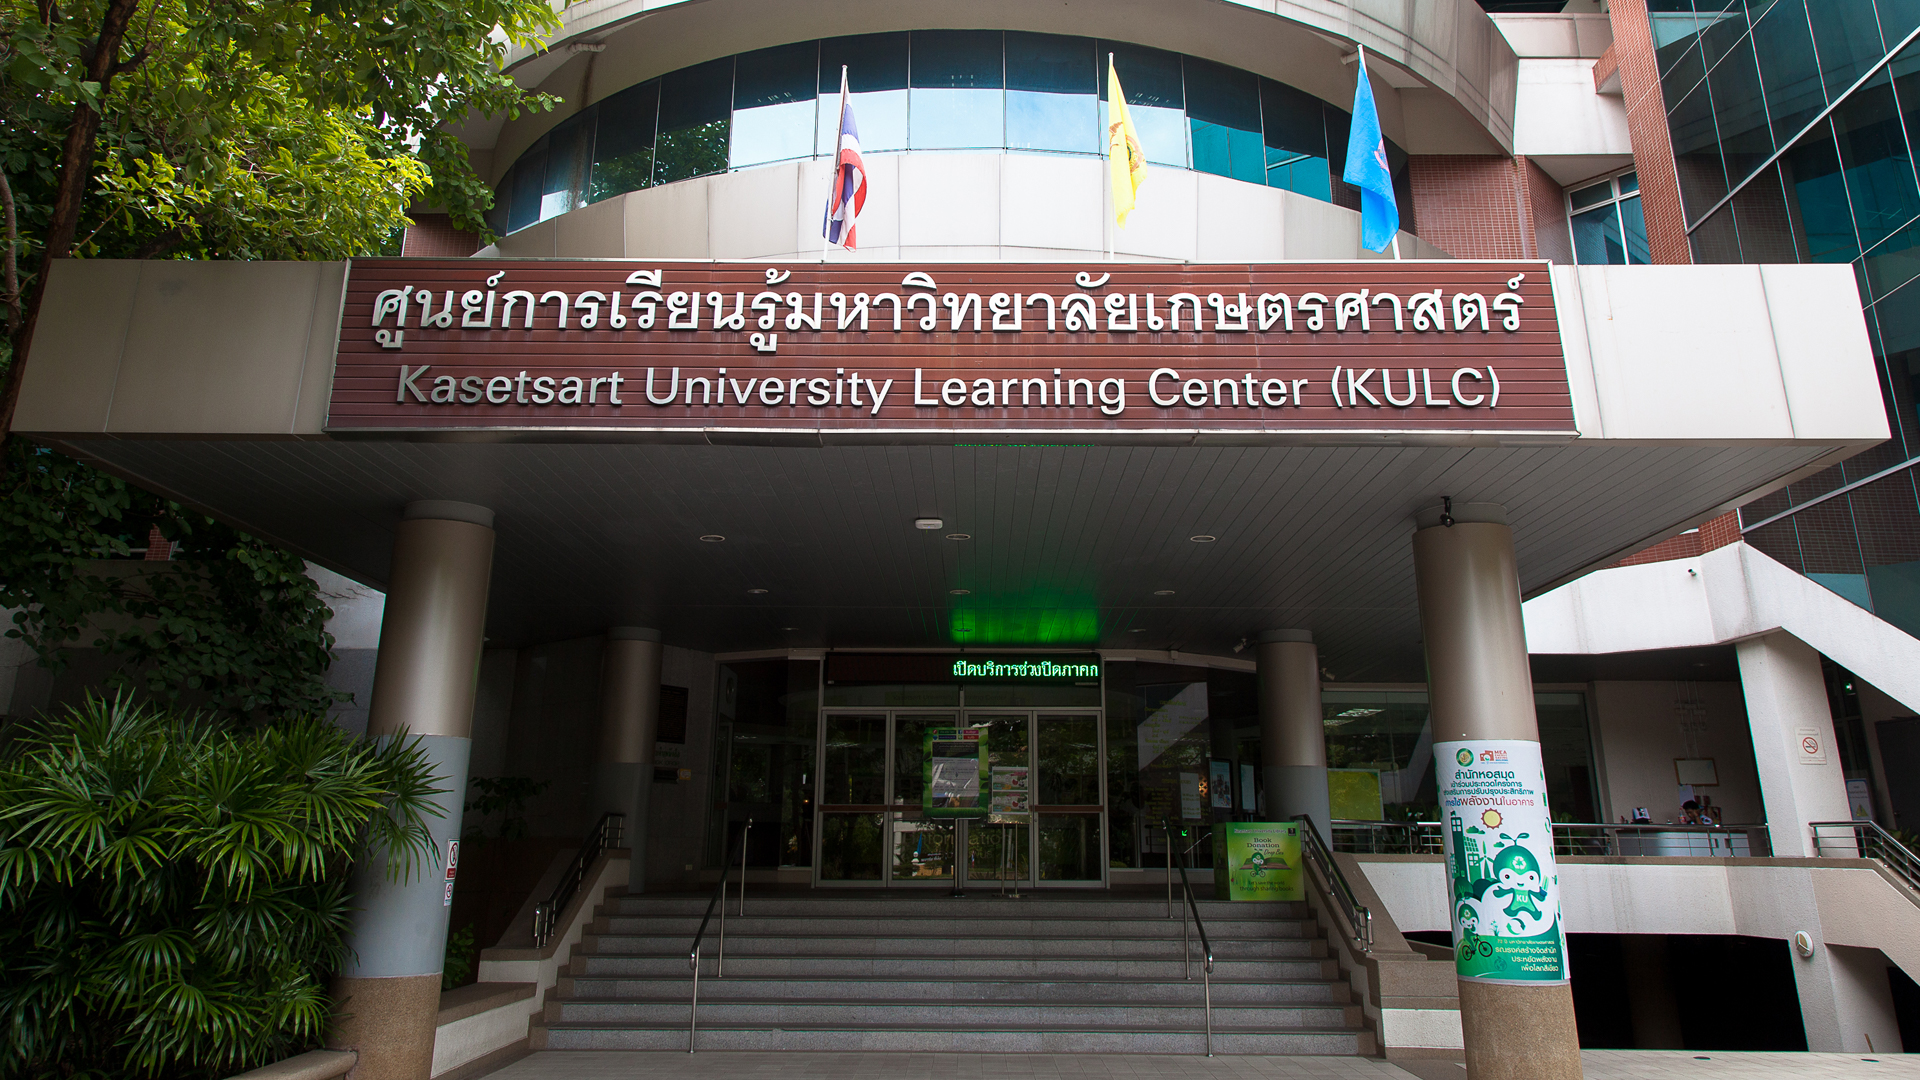 Library at Kasetsart University, Bangkok, Thailand. Photo taken on February 2, 2015.